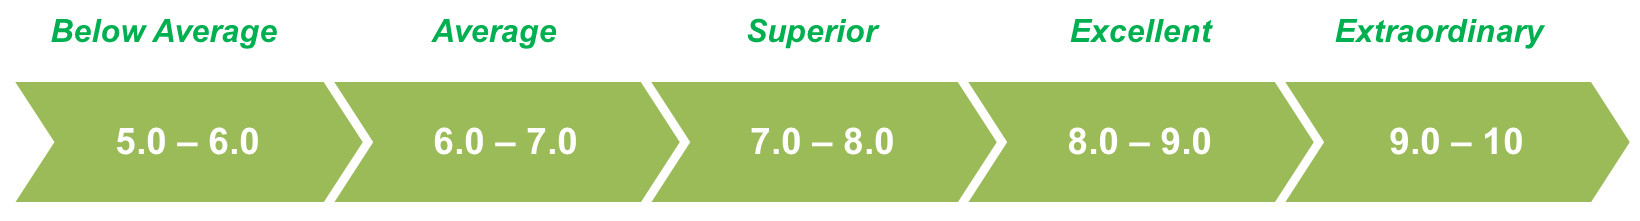 electric toothbrush rating score